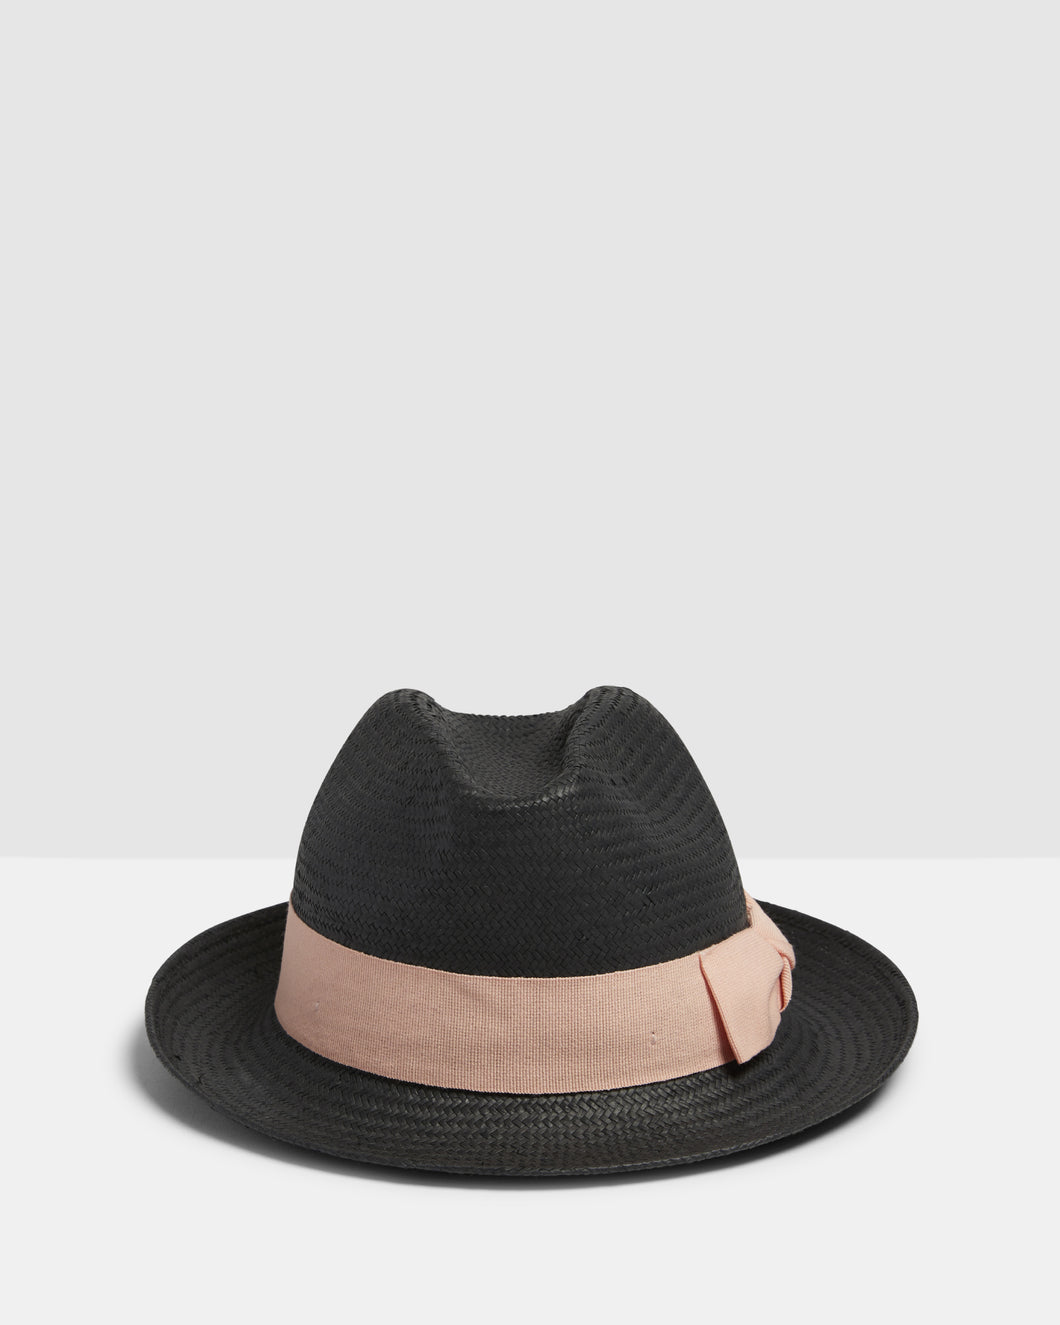 Kate and Confusion black summer ladies trilby fedora hat